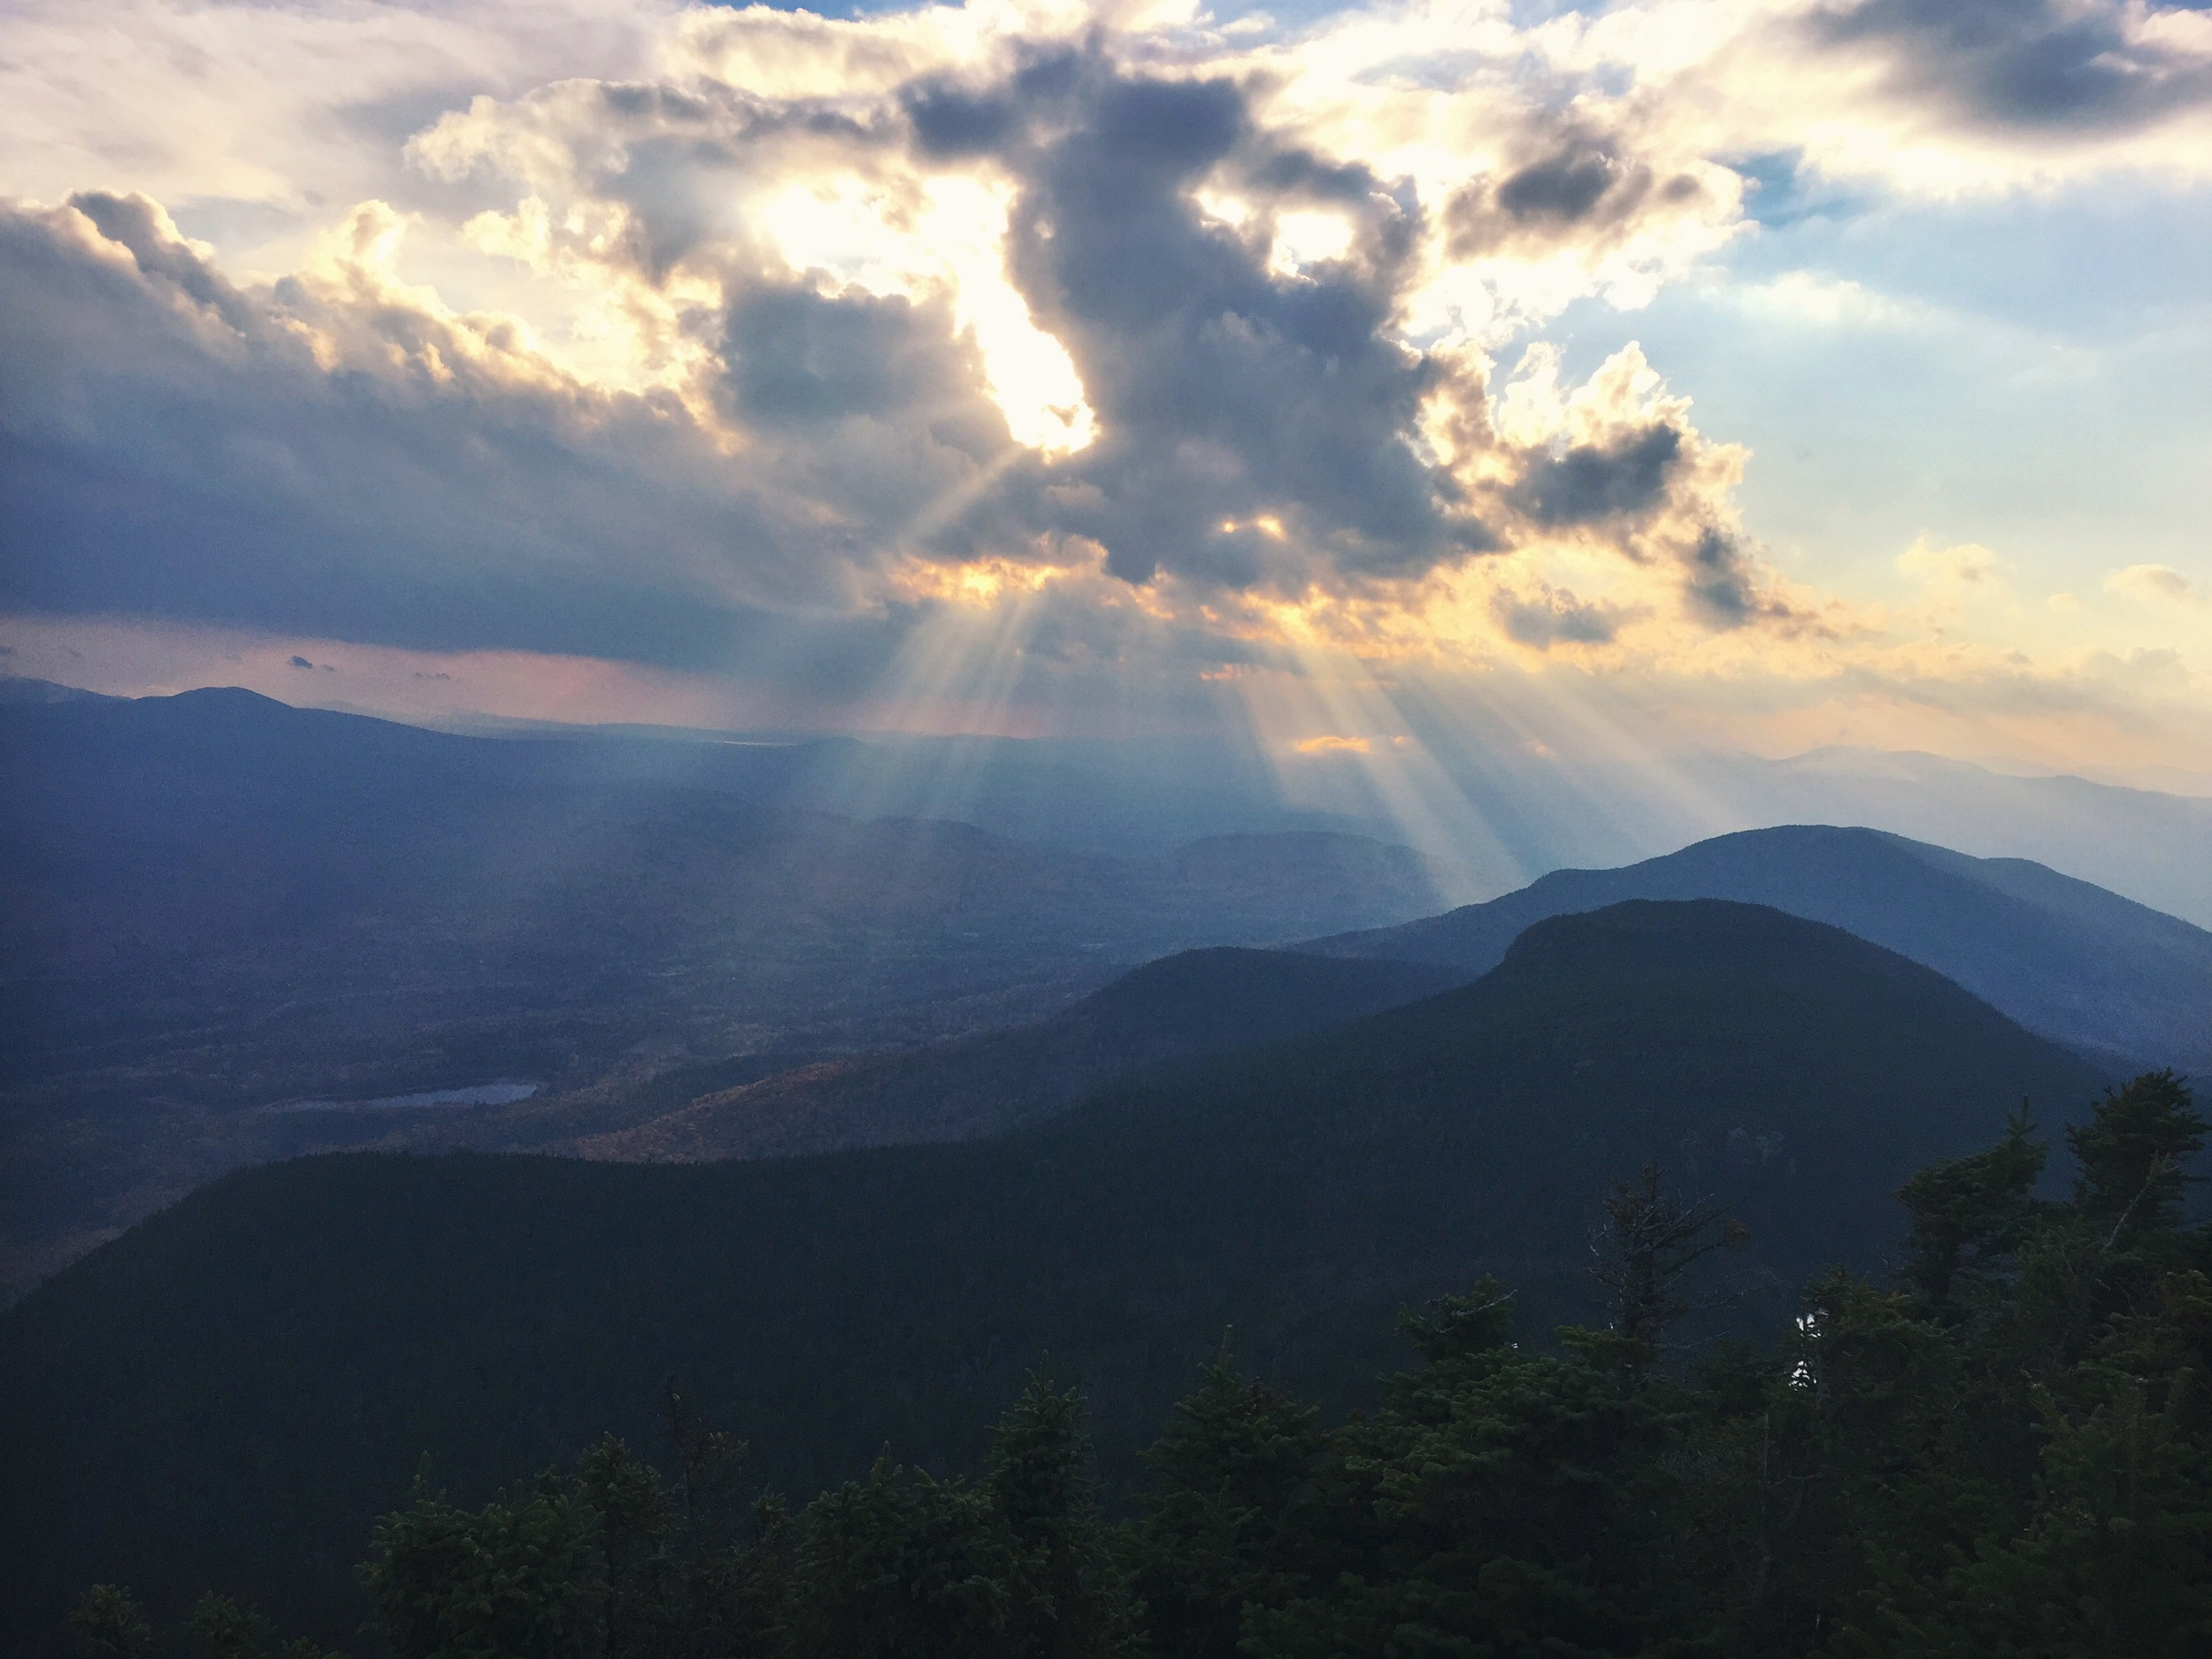 The evening sun hides behind the clouds, view west from the South Horn.